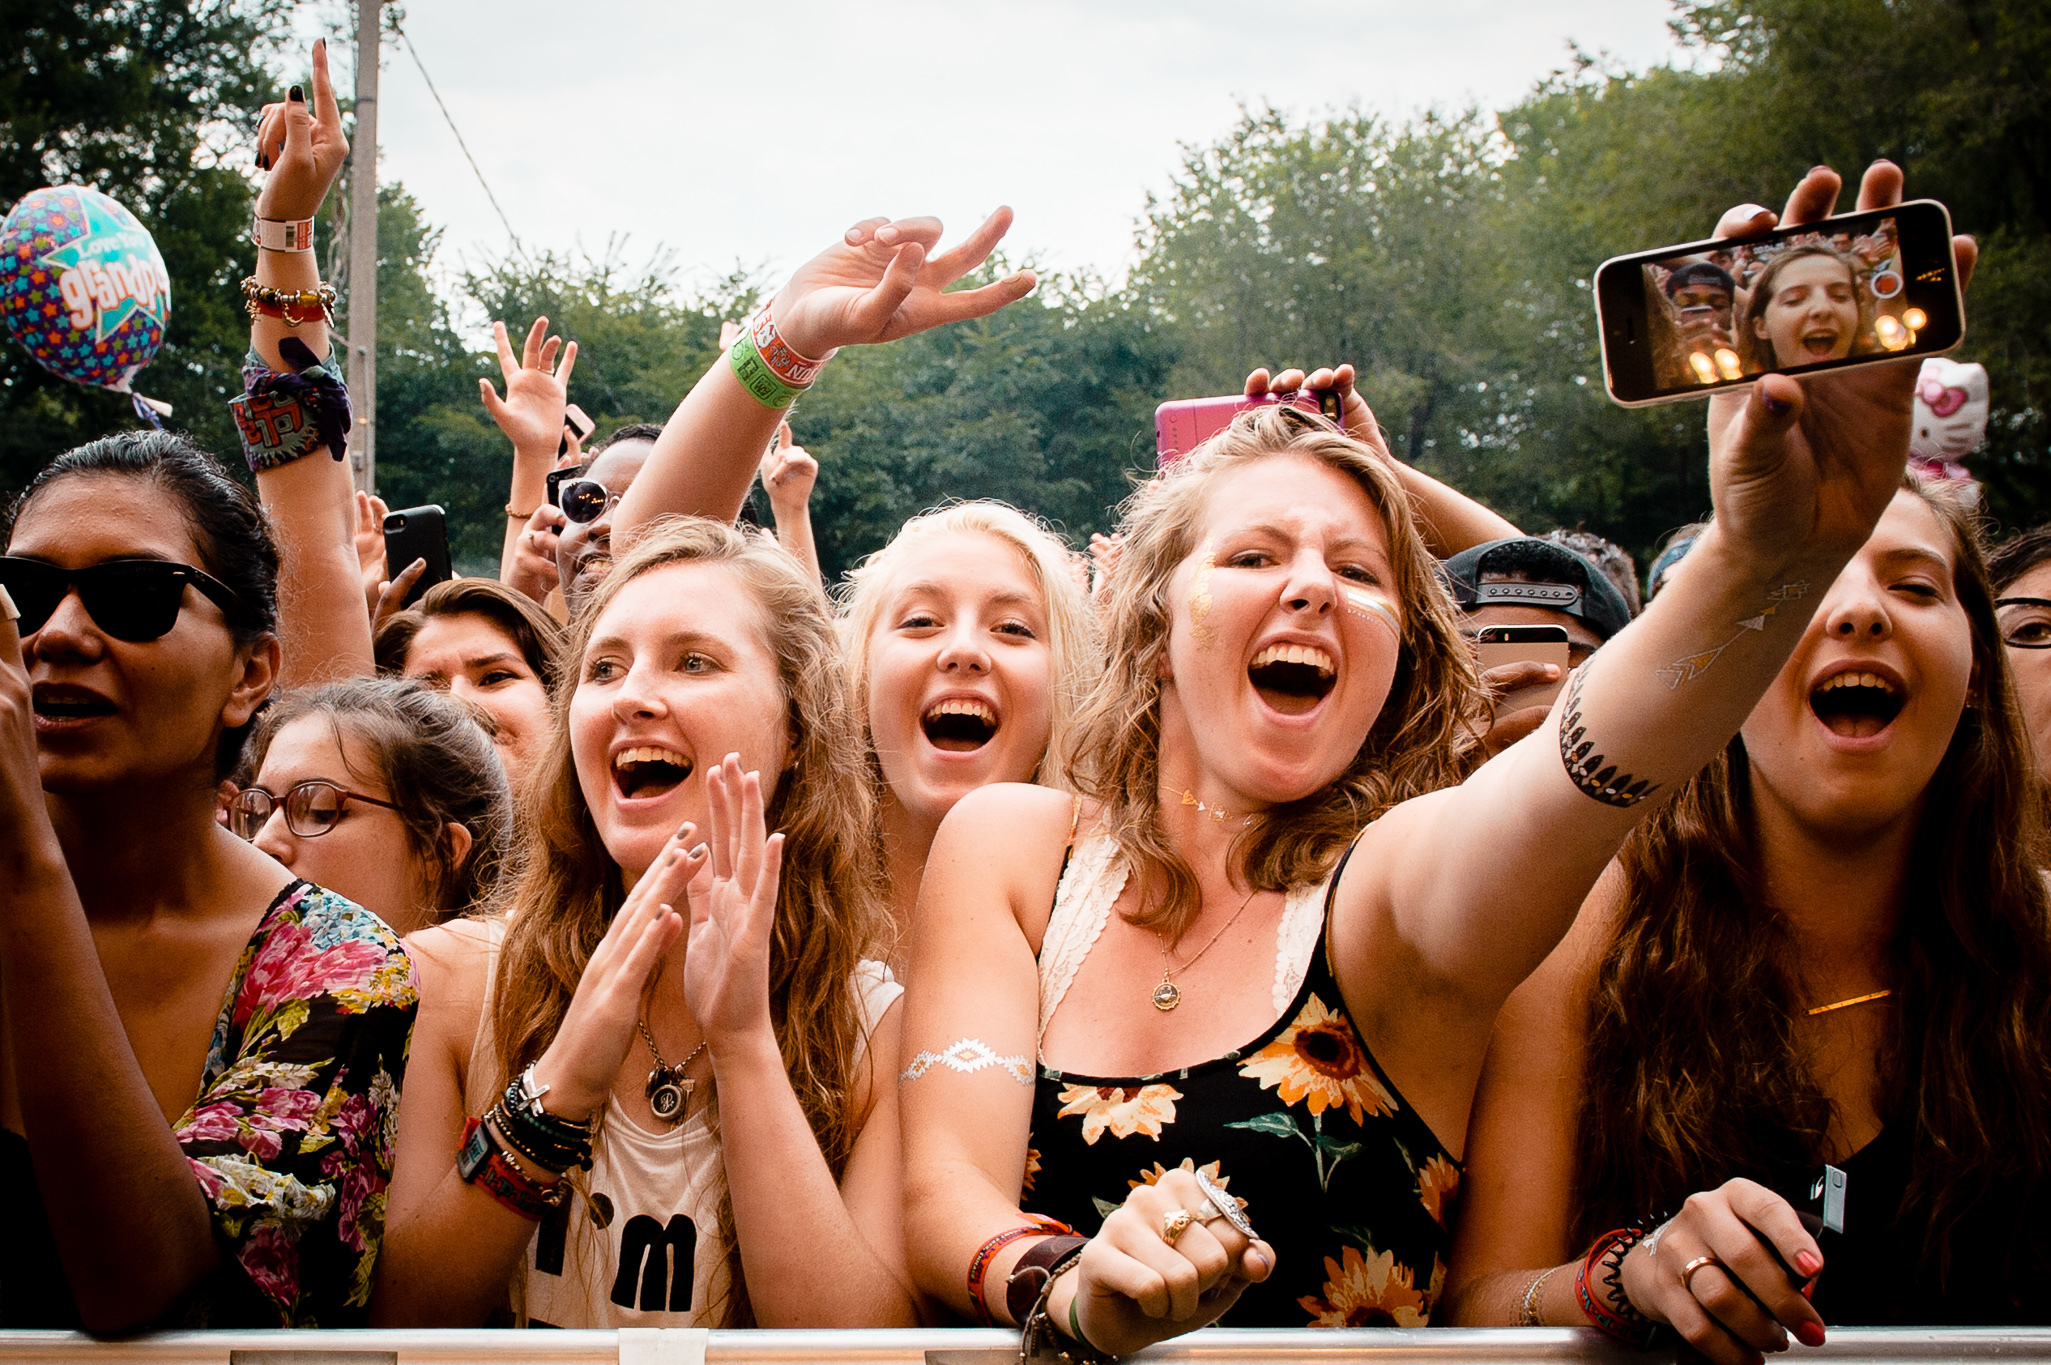 Final thoughts on Lollapalooza 2014